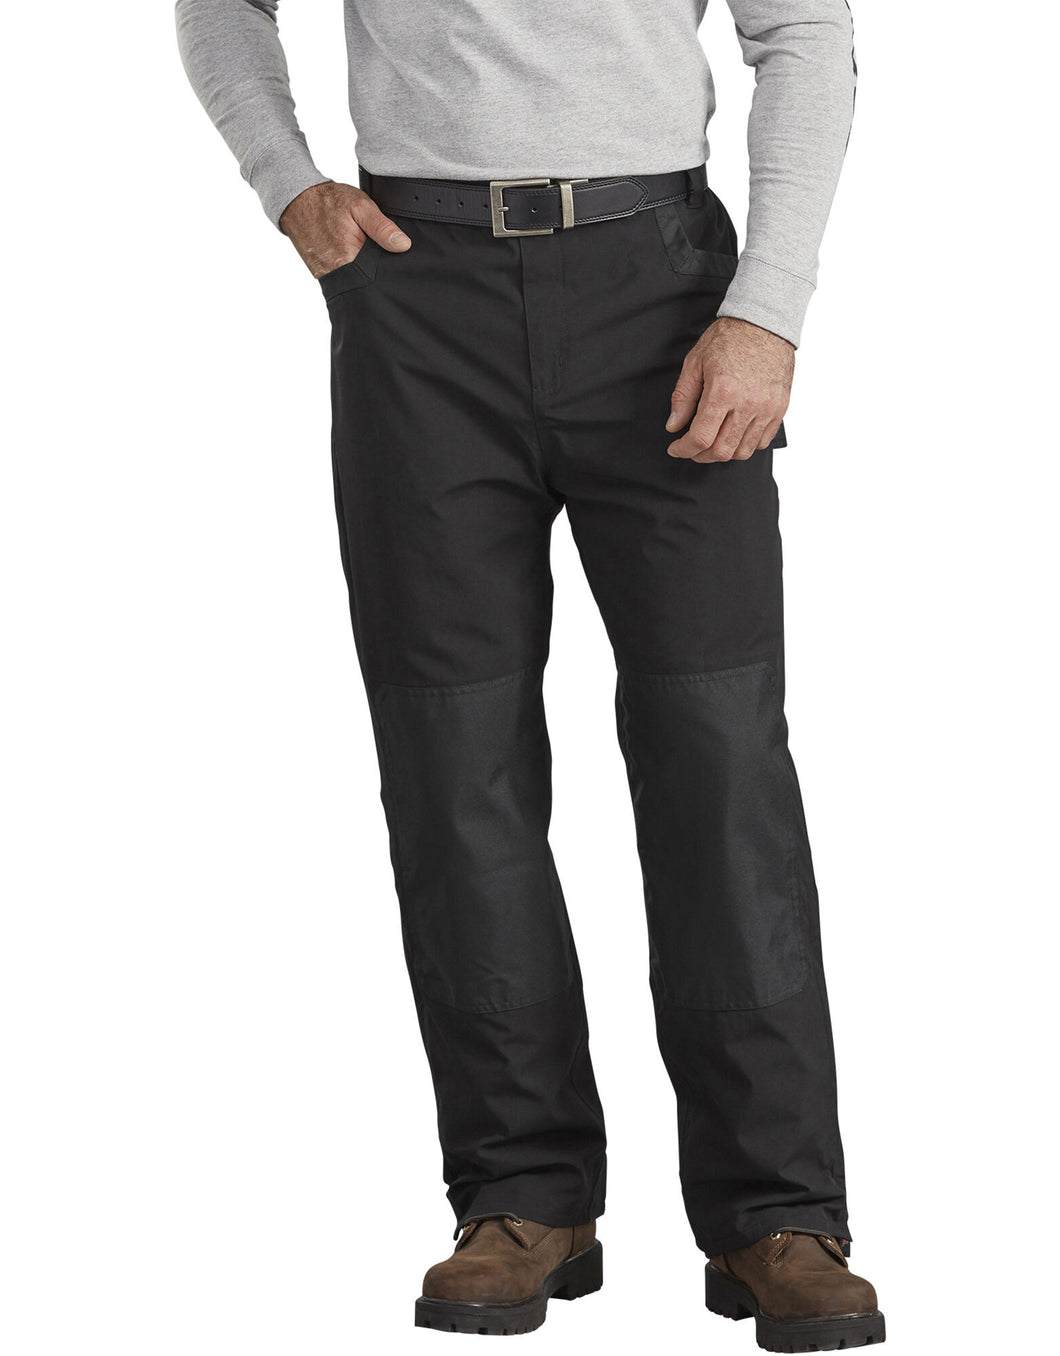 XXXDICKIES MENS PRO™ BANFF EXTREME WORK PANT BJP04